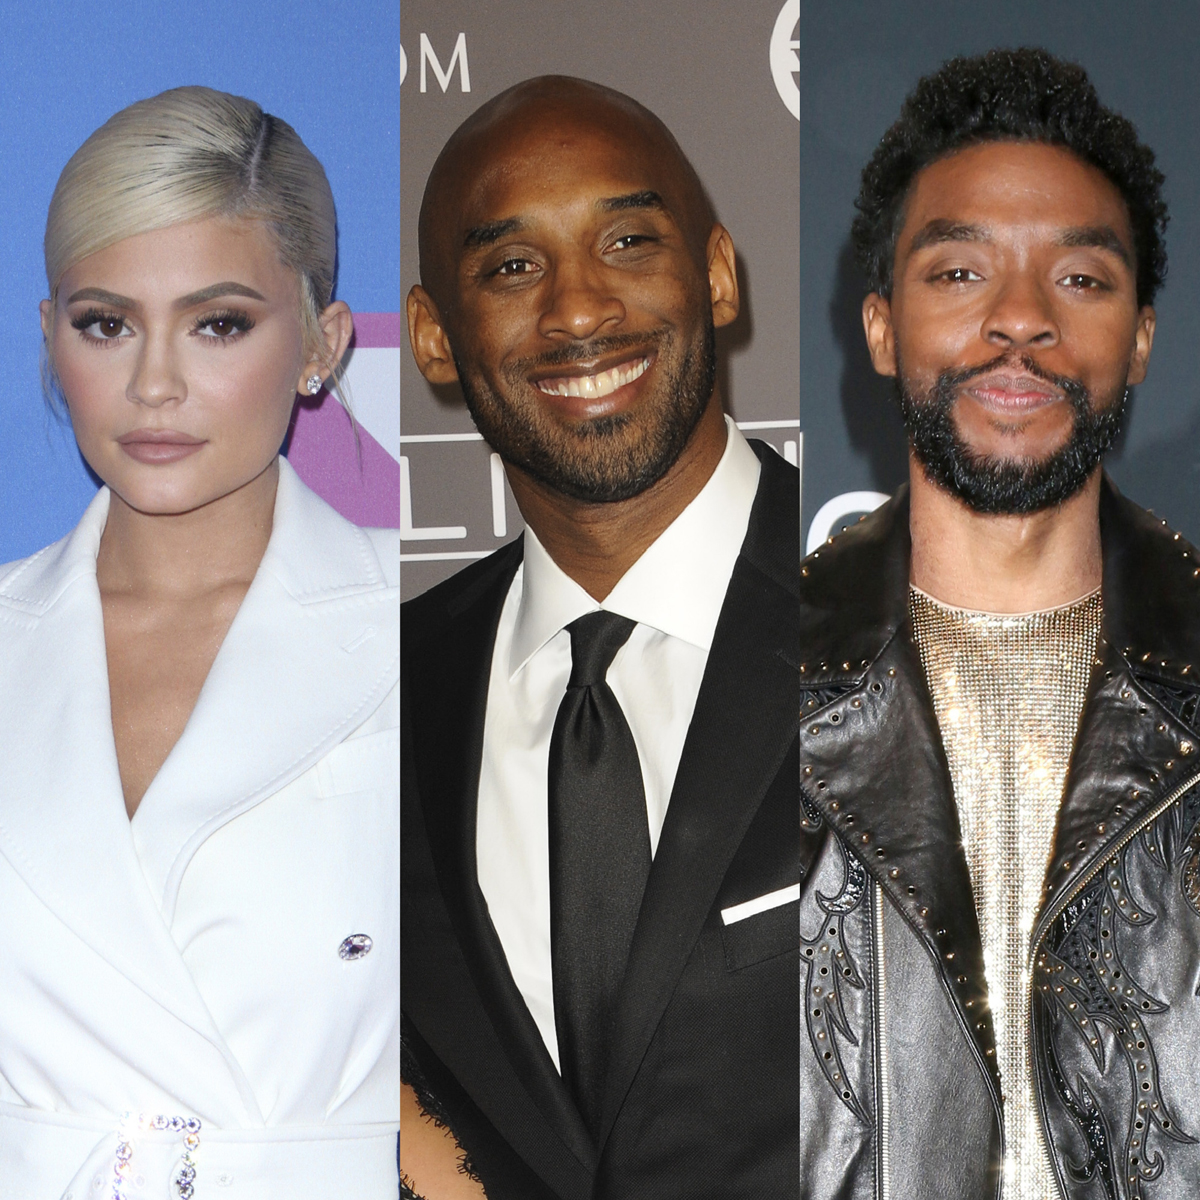 10 Most-Liked Instagram Posts Of 2020 Feature Kylie, Kobe, & Chadwick -- But They Aren't #1